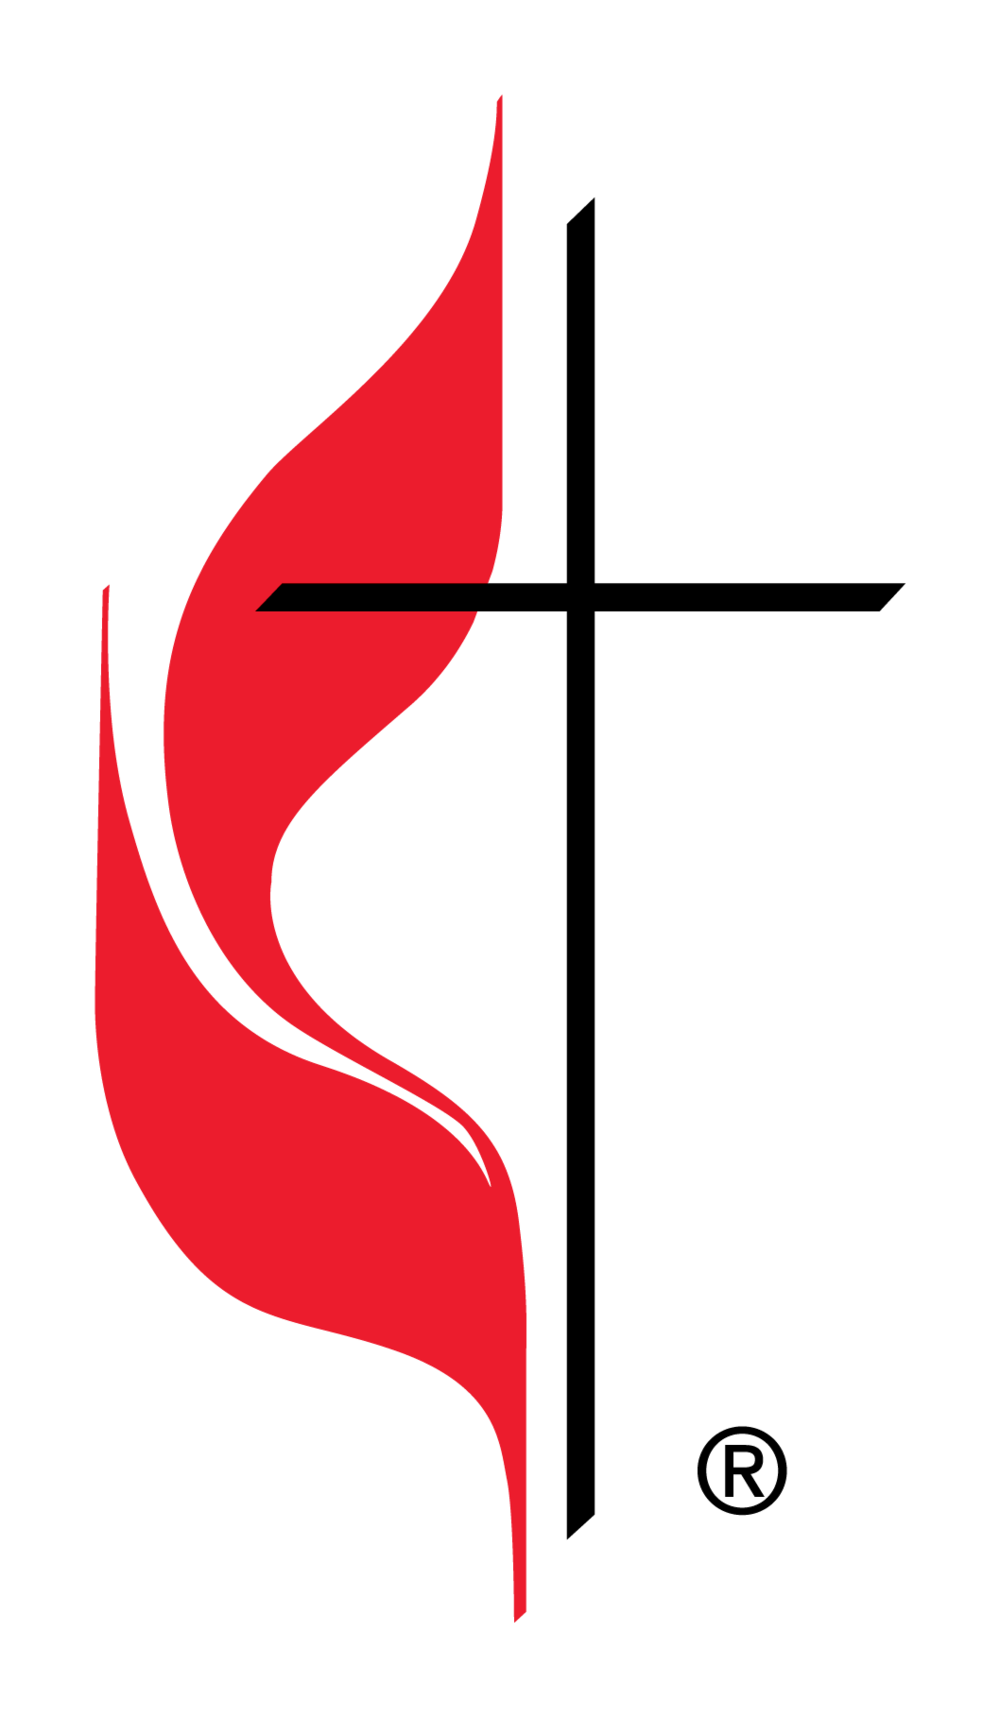 We are part of the worldwide connection of United Methodist Christians